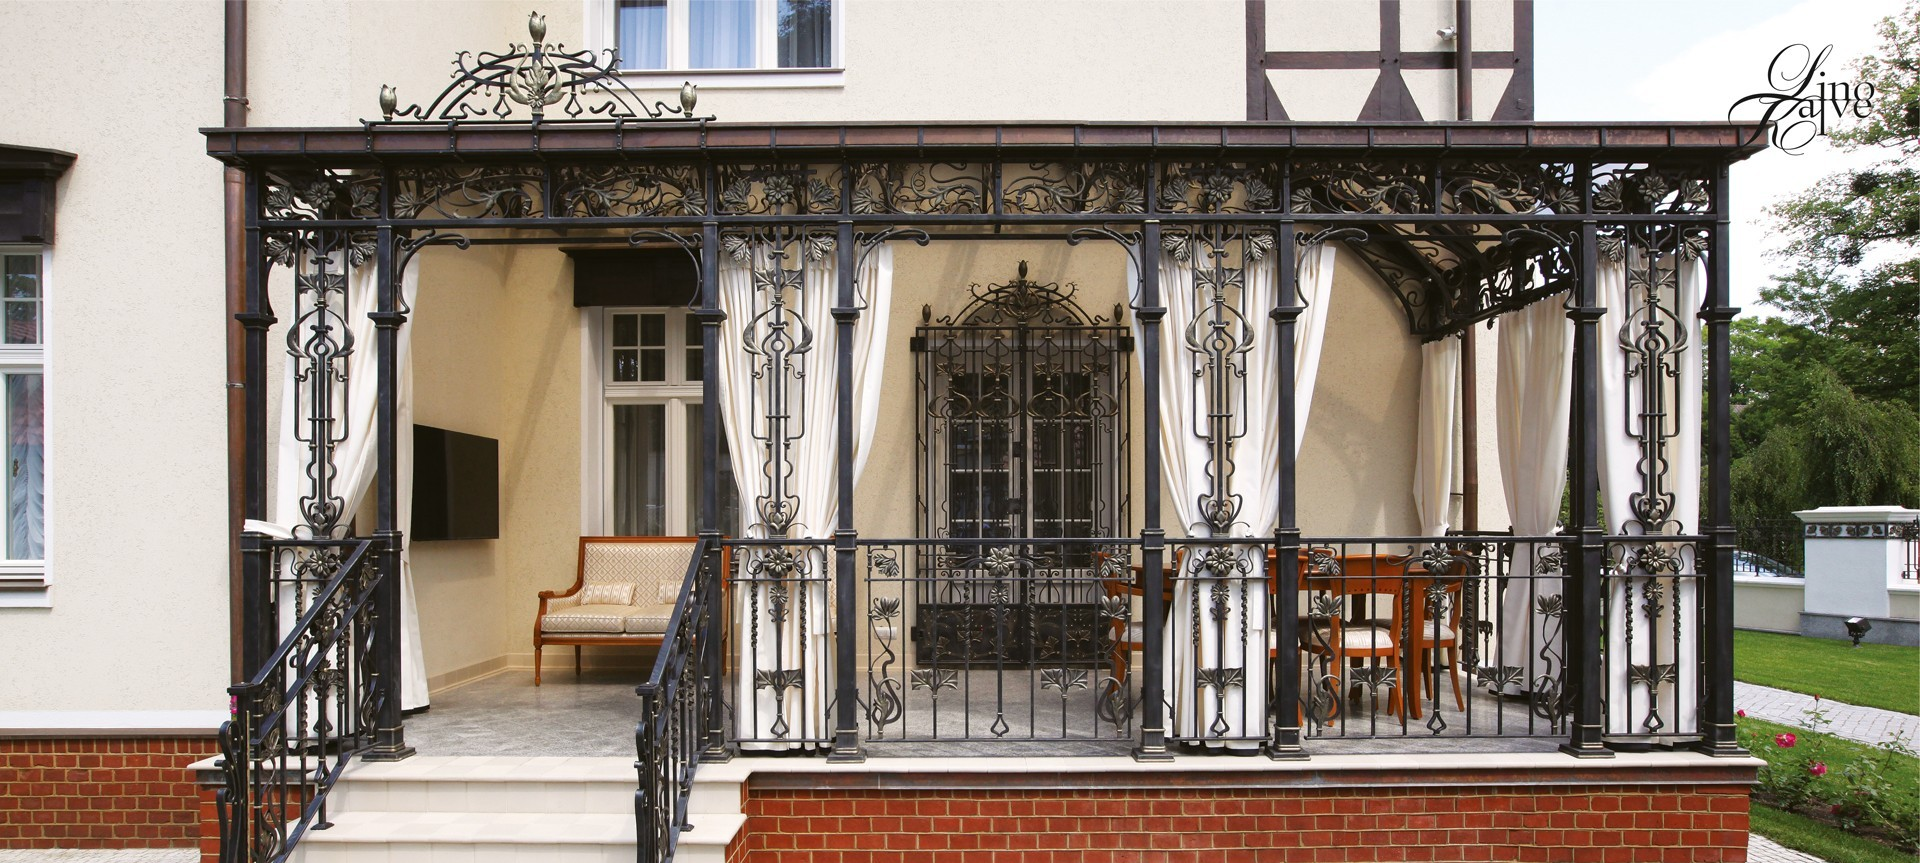 PRIVATE RESIDENCE. TERRACE